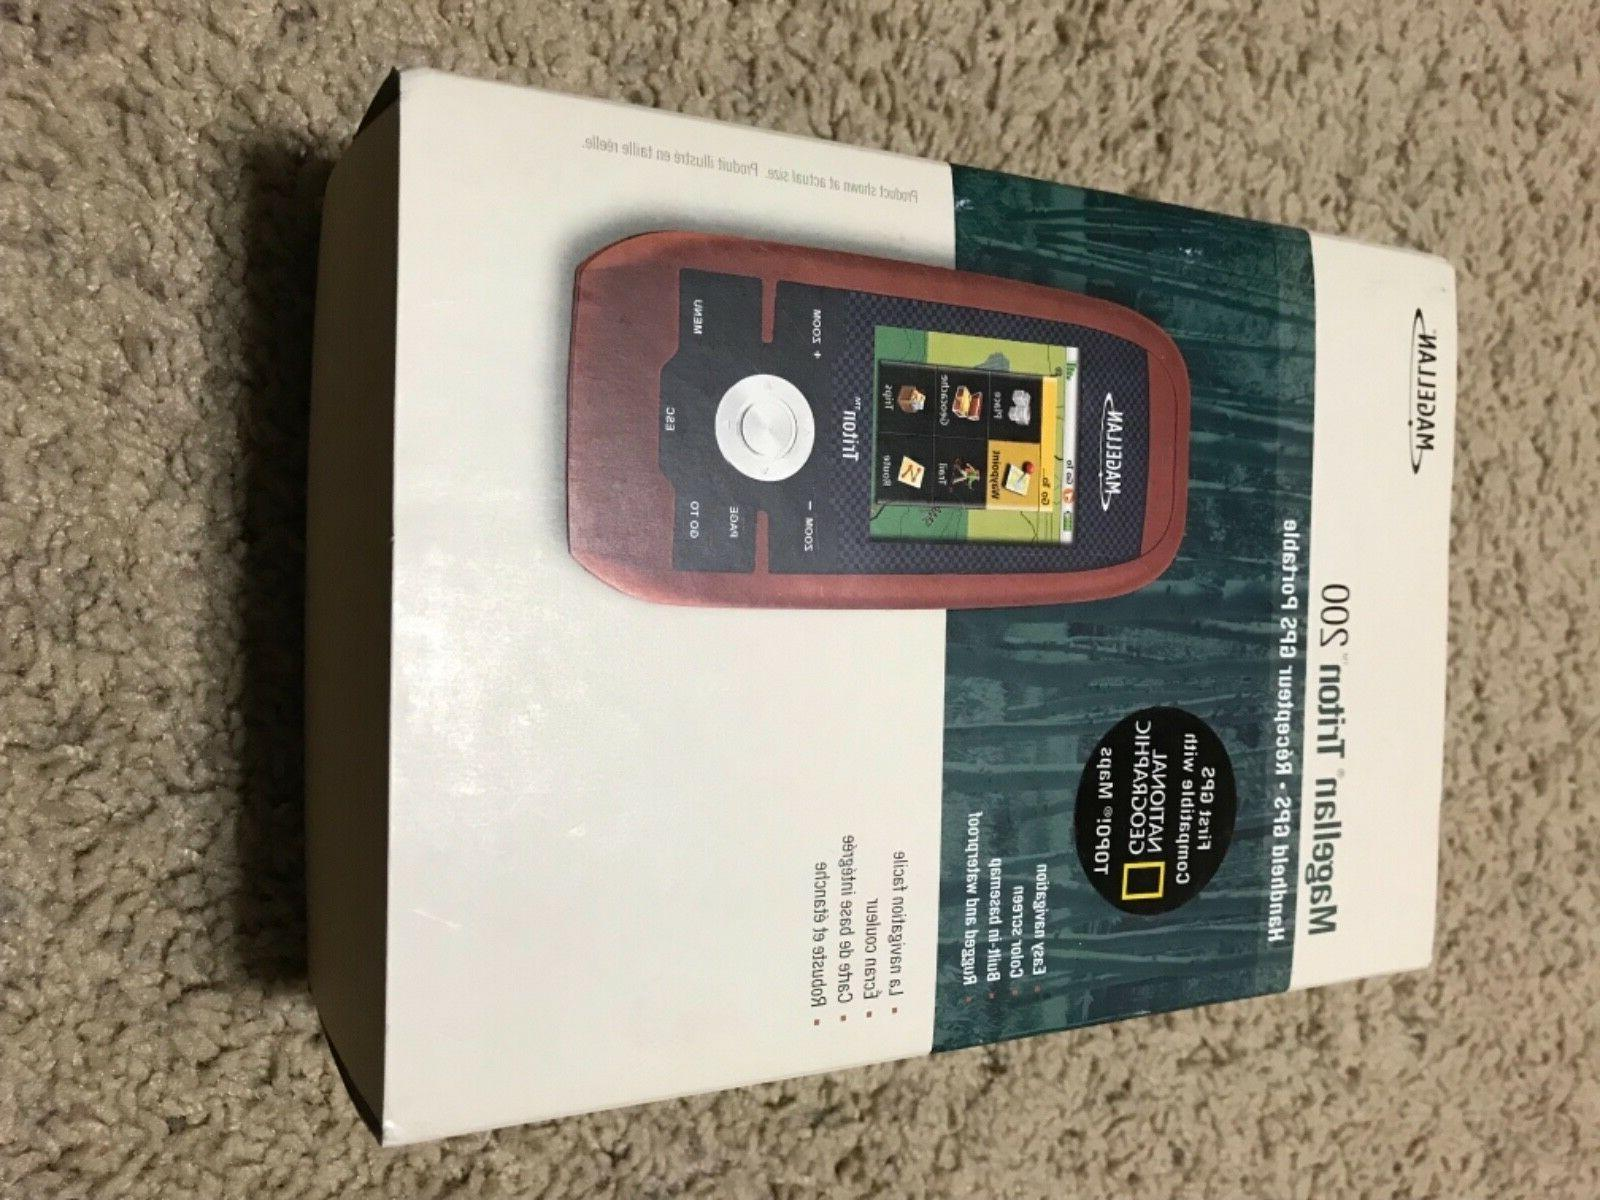 new triton 200 handheld gps waterproof